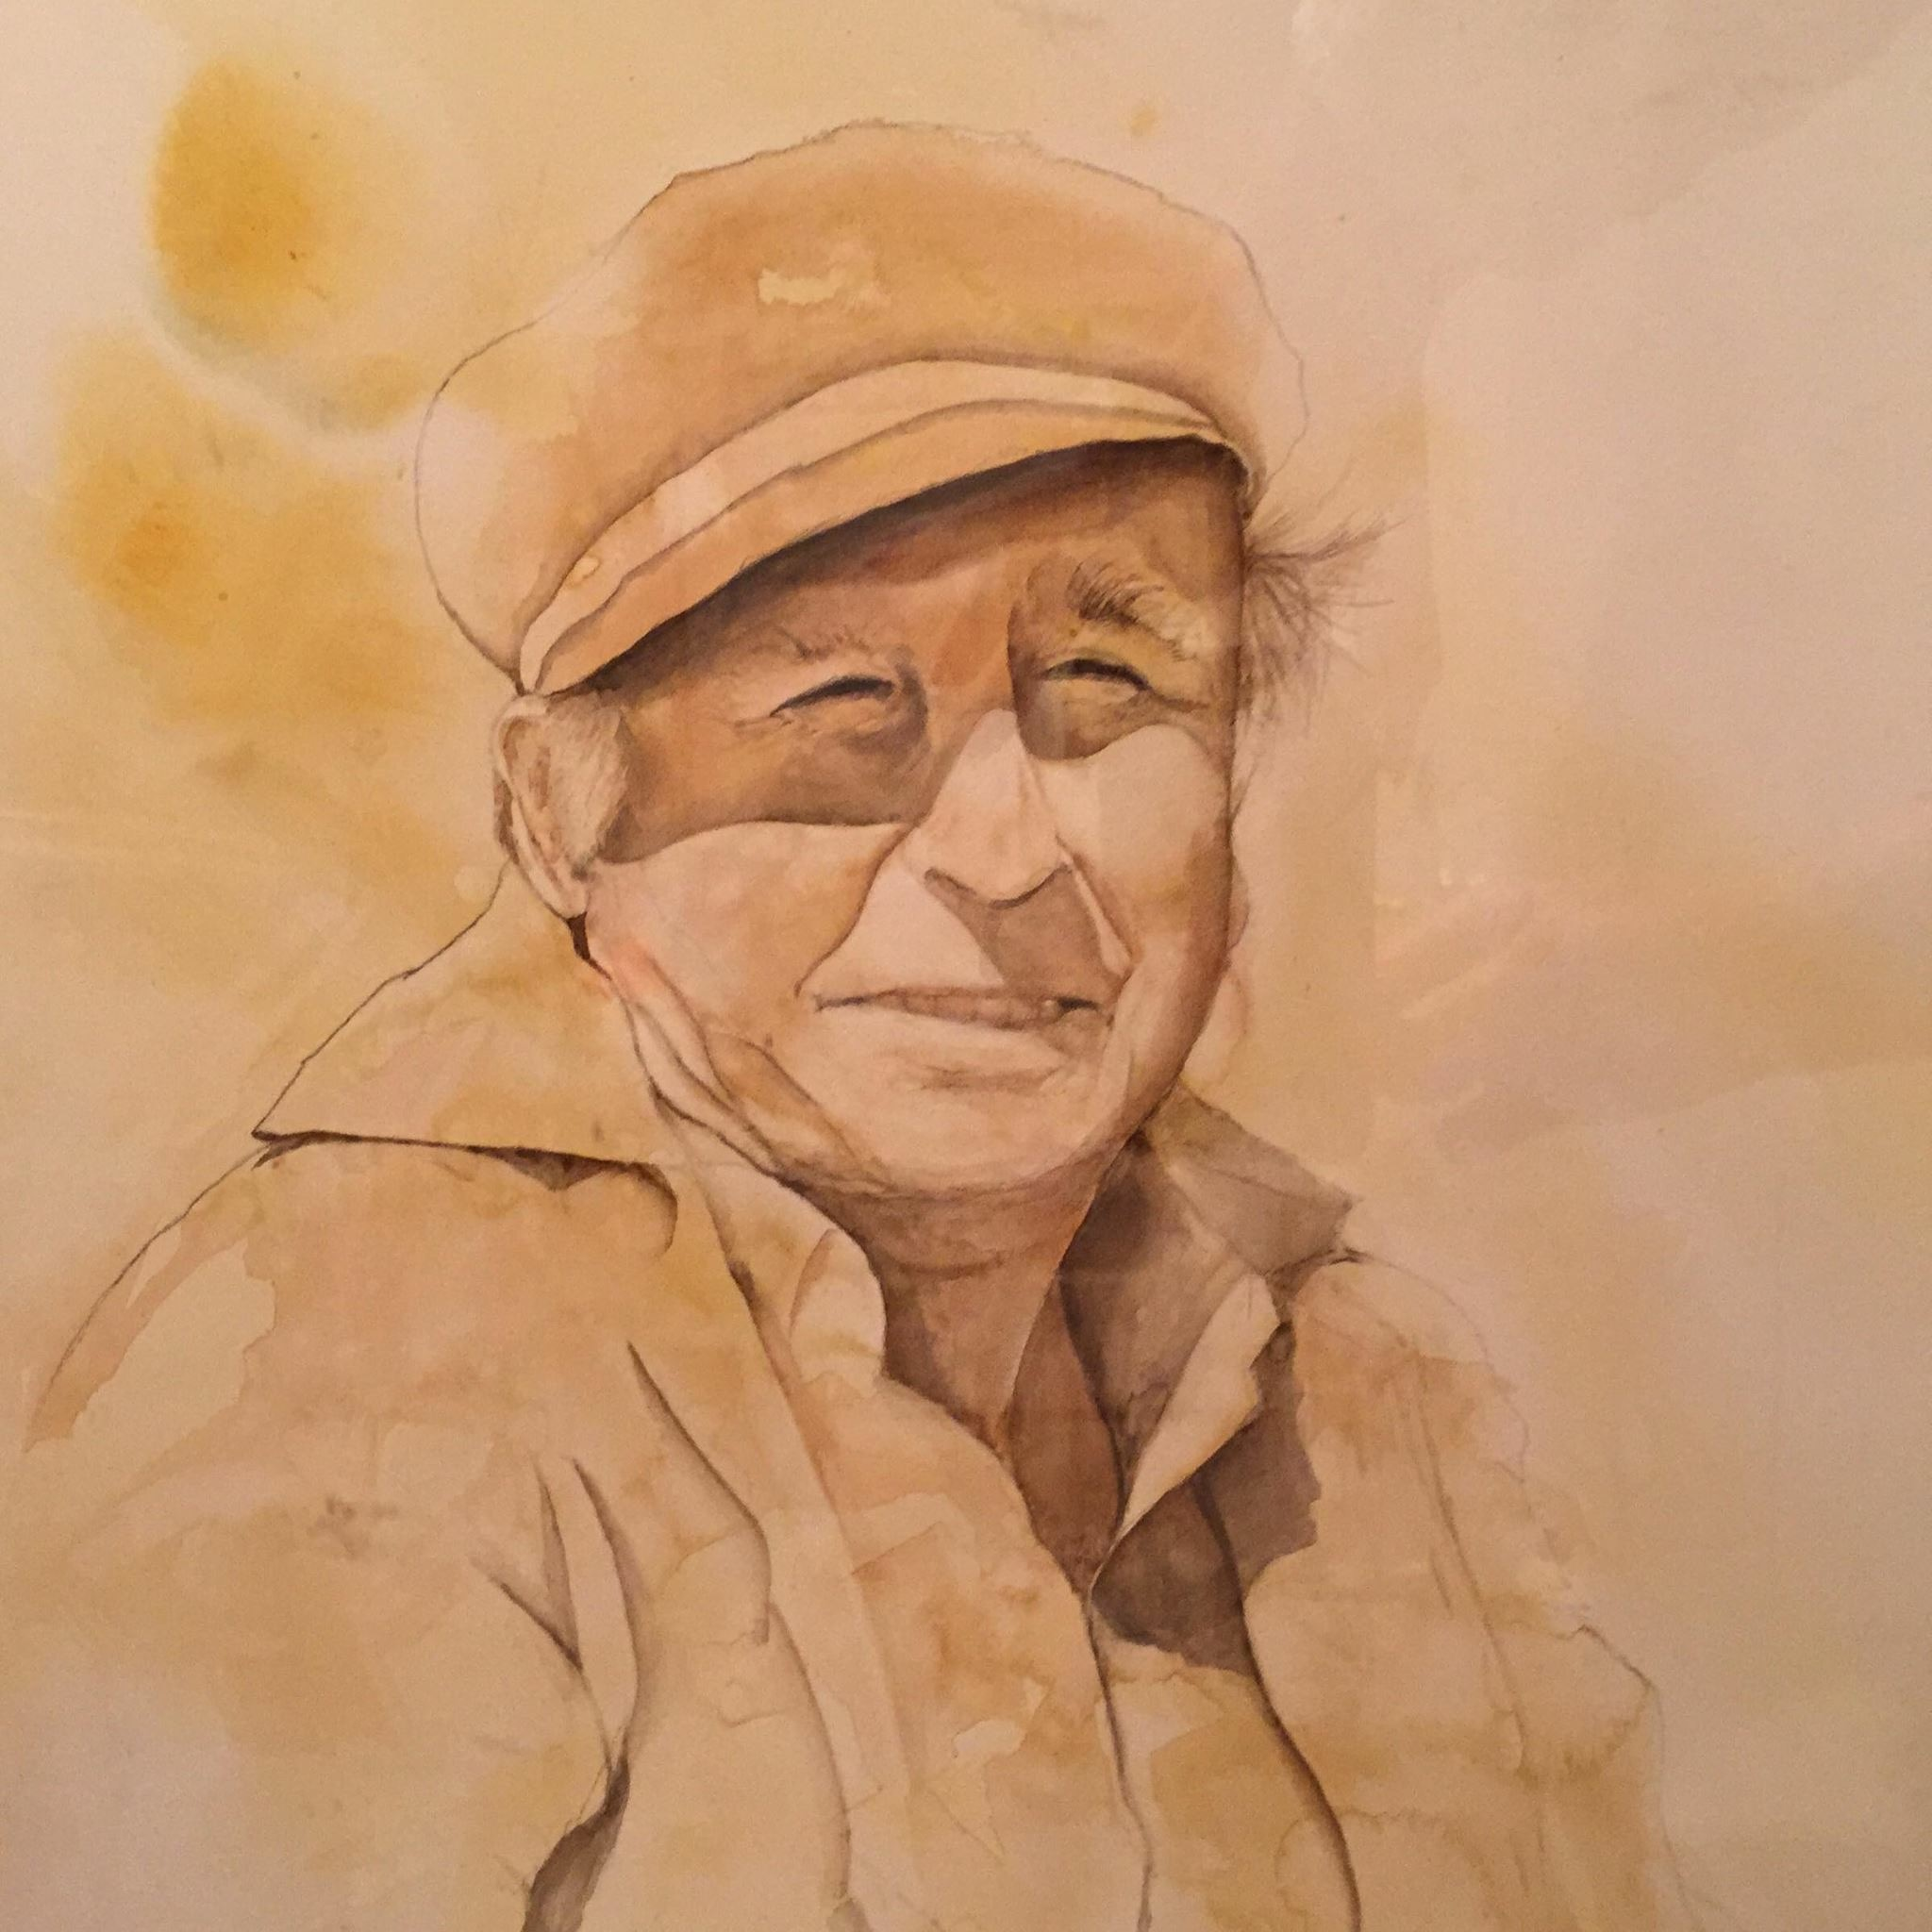 """""""The Fisherman,"""" by Melody Weintraub. Watercolor. Please do not reproduce."""